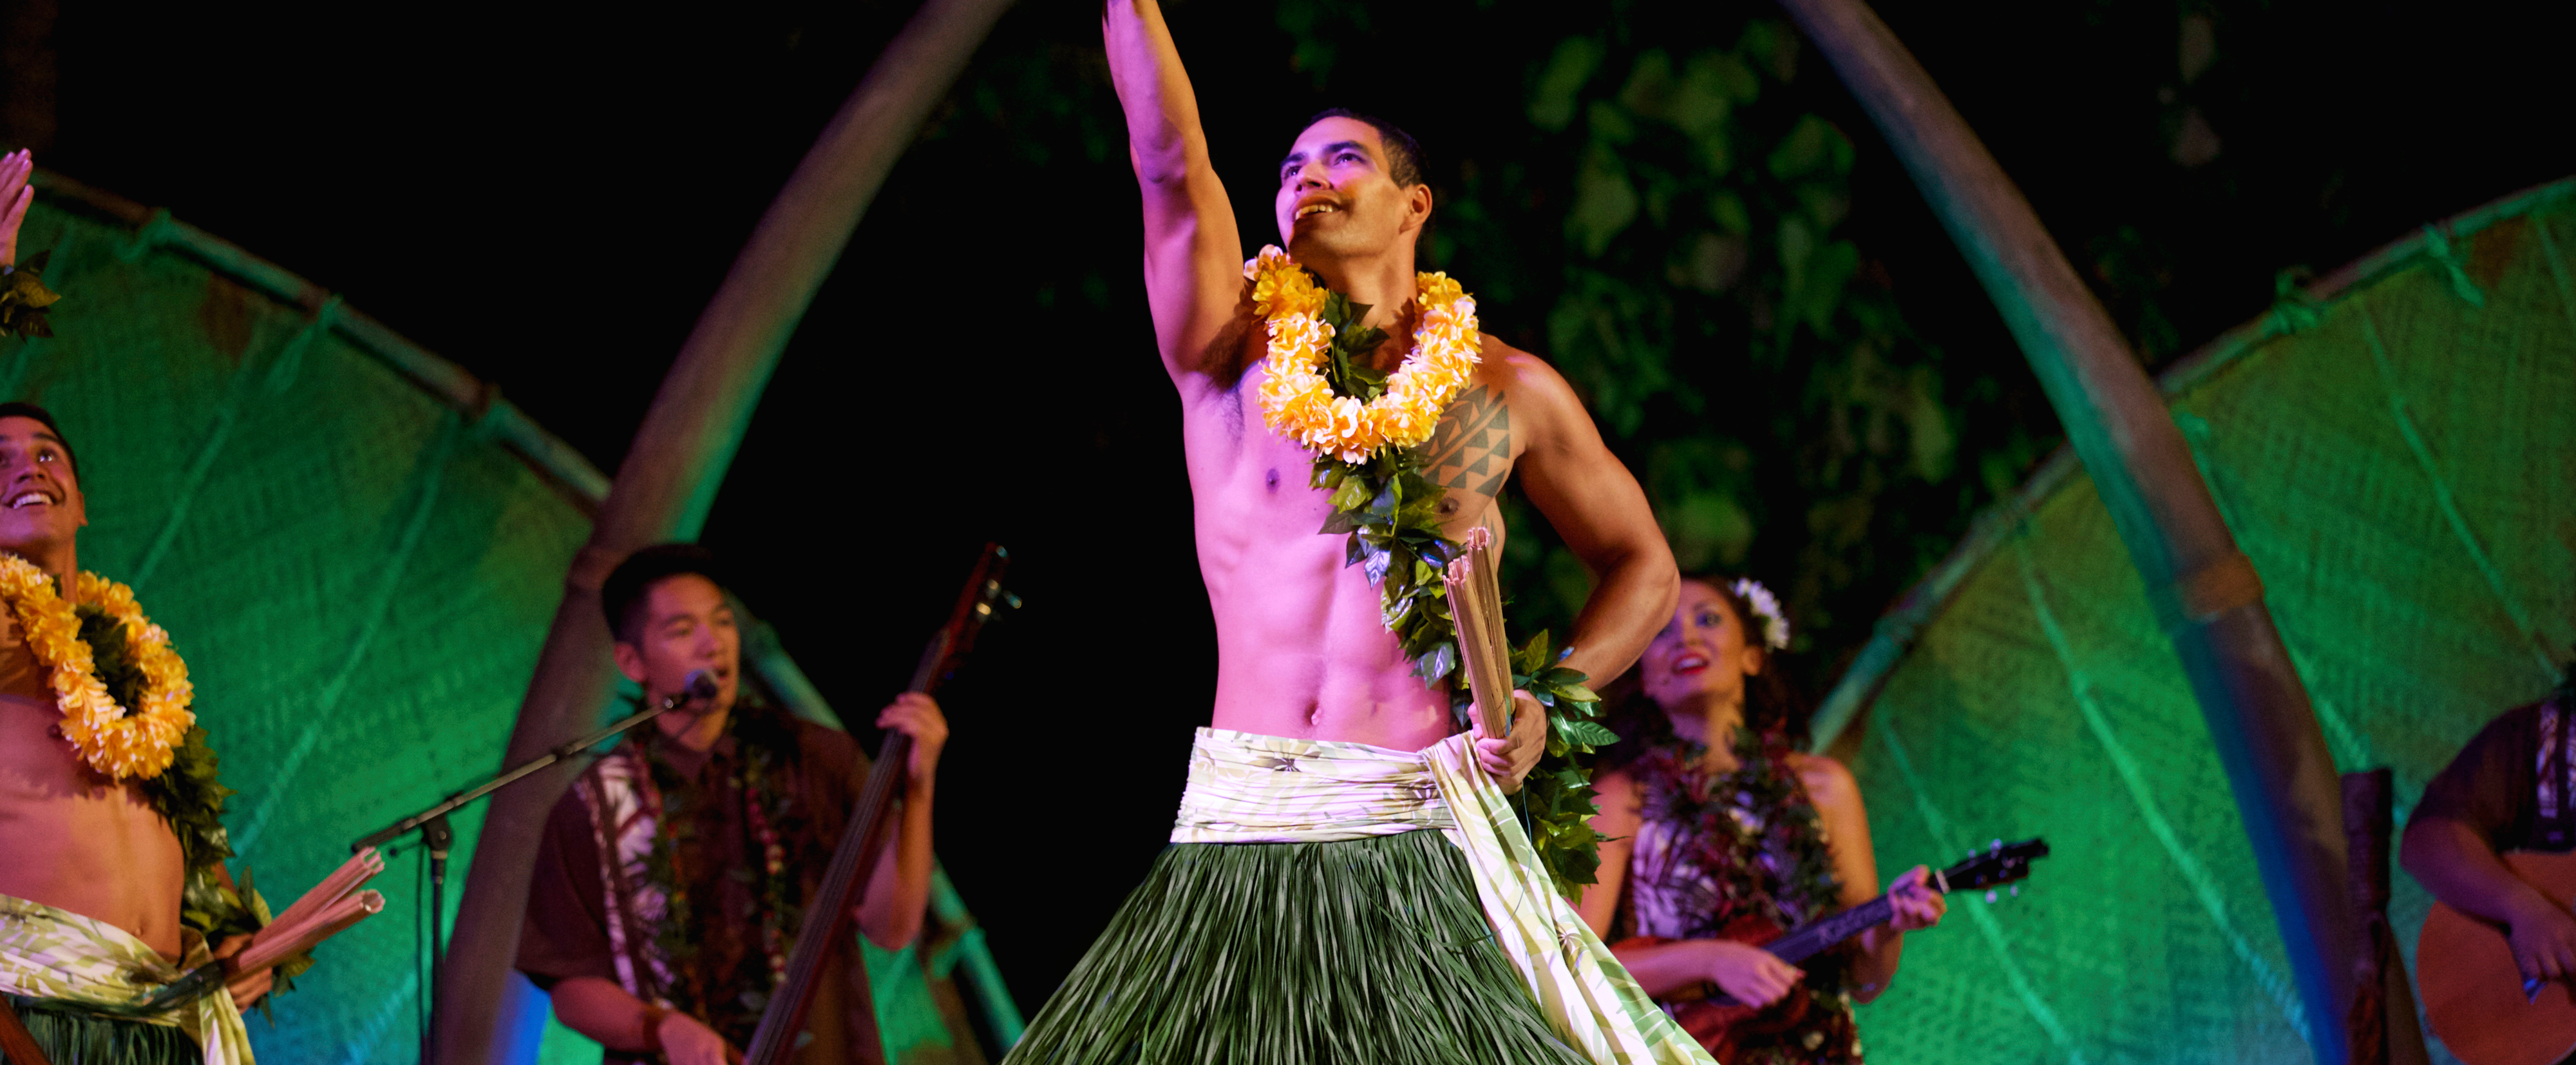 Two smiling male performers with pūʻili split bamboo sticks reach skyward as musicians play behind them